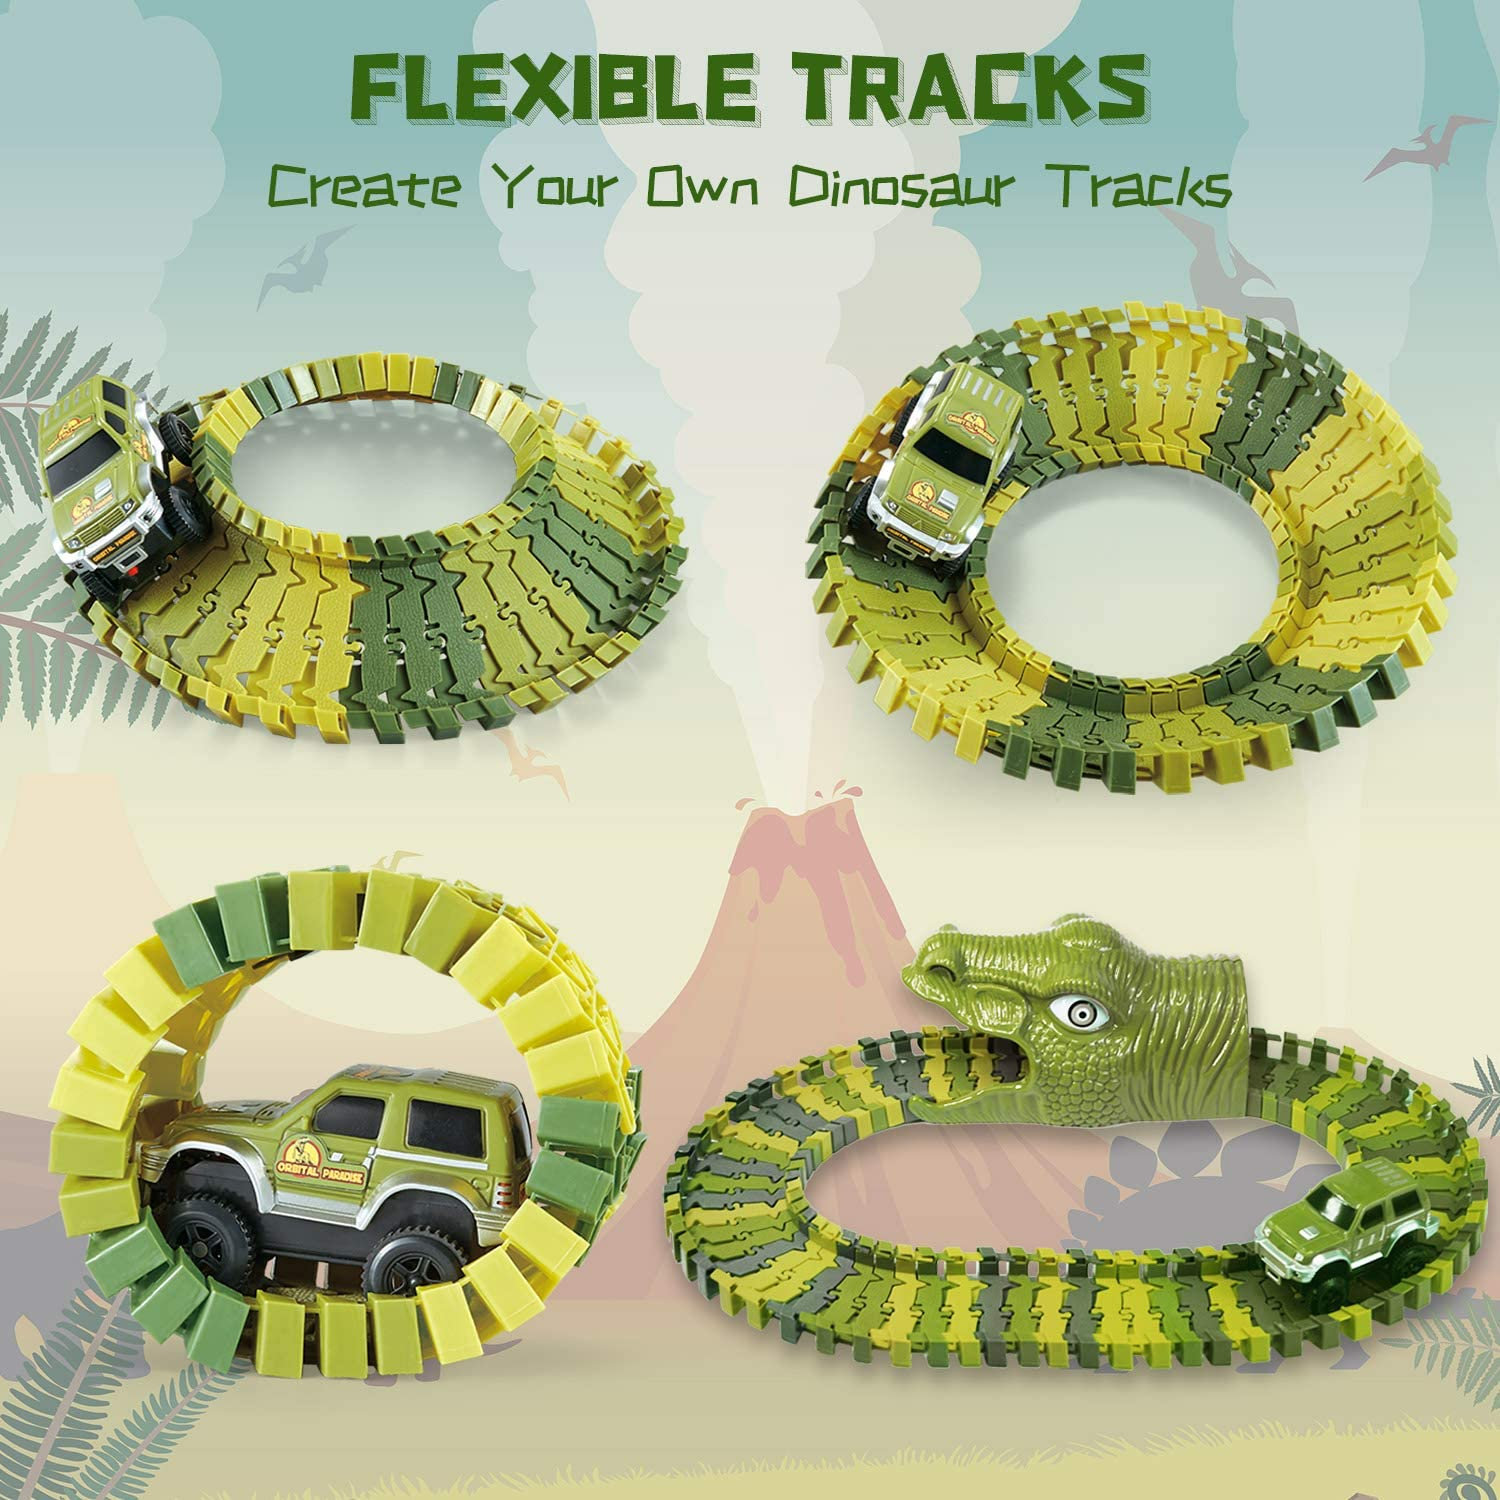 280 Flexible Race Tracks with 2 Off-Road Cars for Boys Girls Age 3 and Up KO-ON Dinosaur Race Track for Kids Create Your Own Dinosaur Toy World Race Road